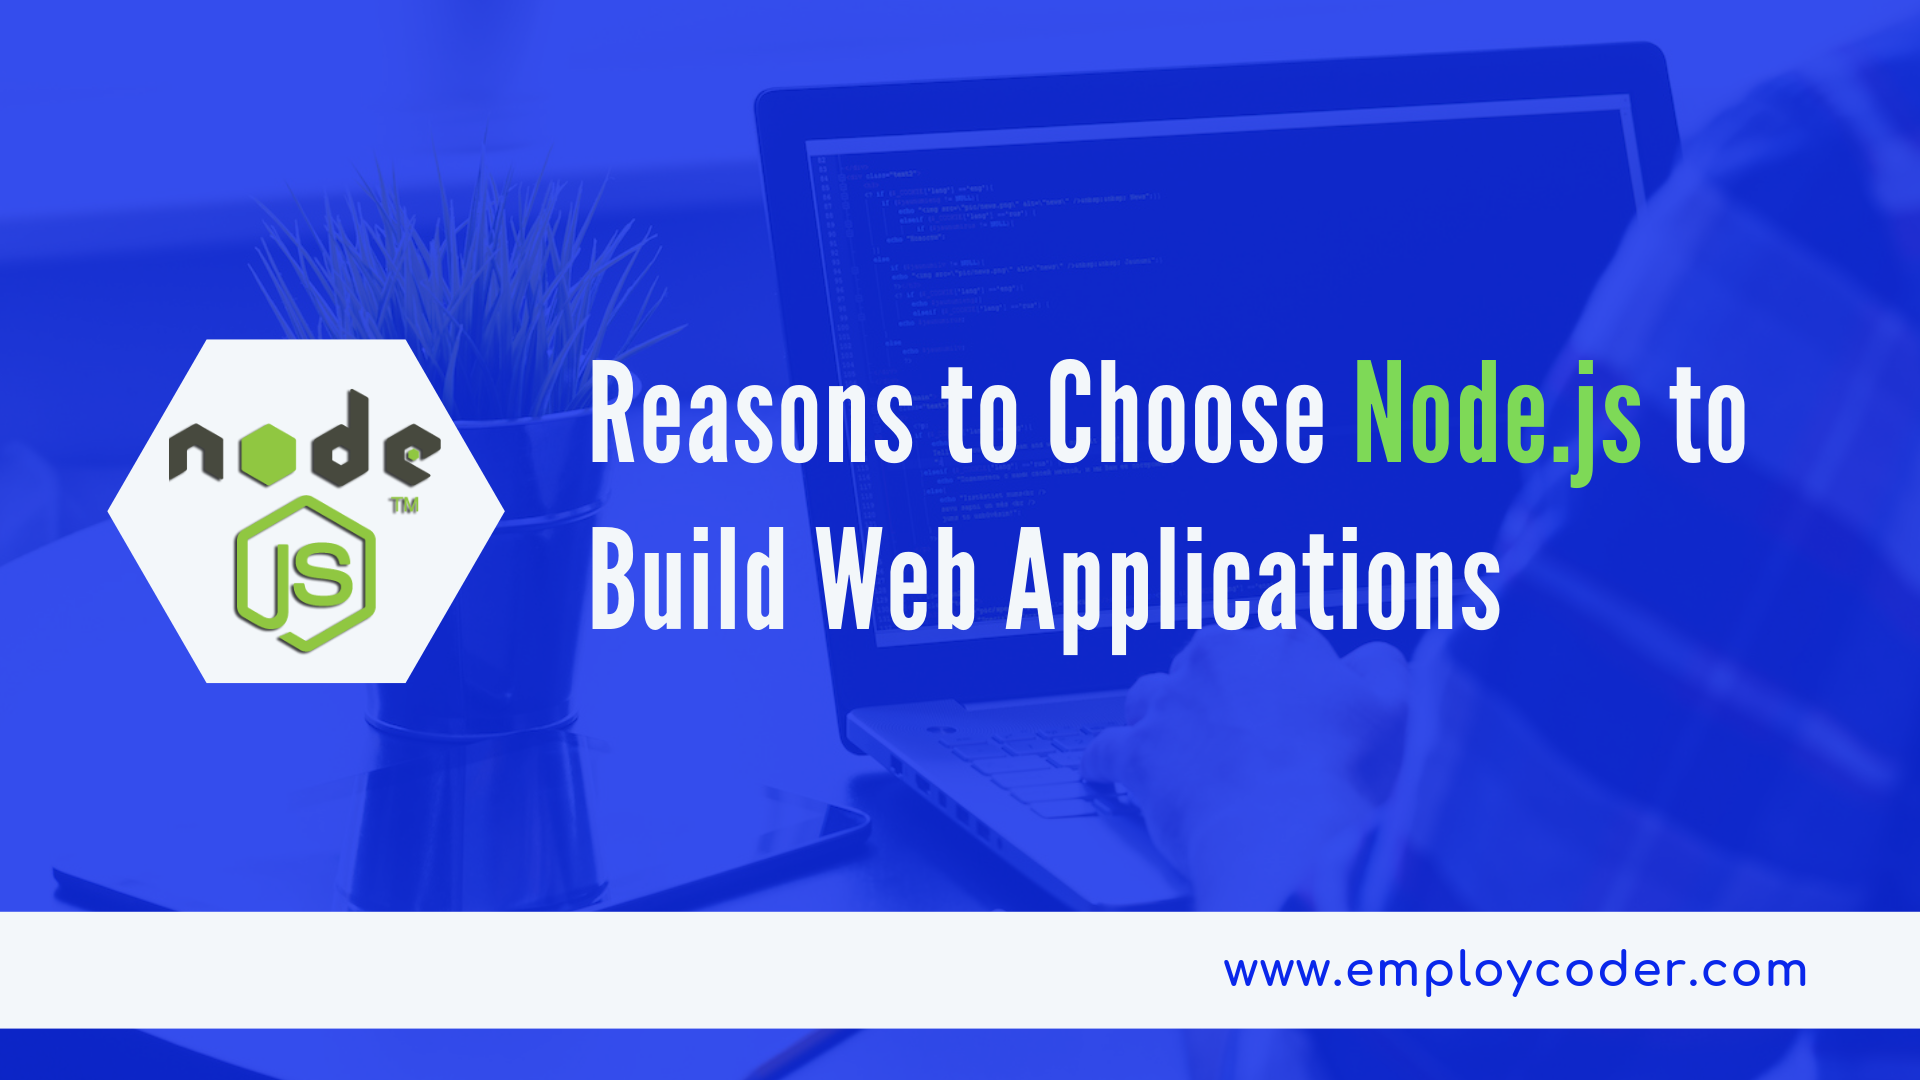 Why Node.Js is the Best Choice to Build Web Applications?